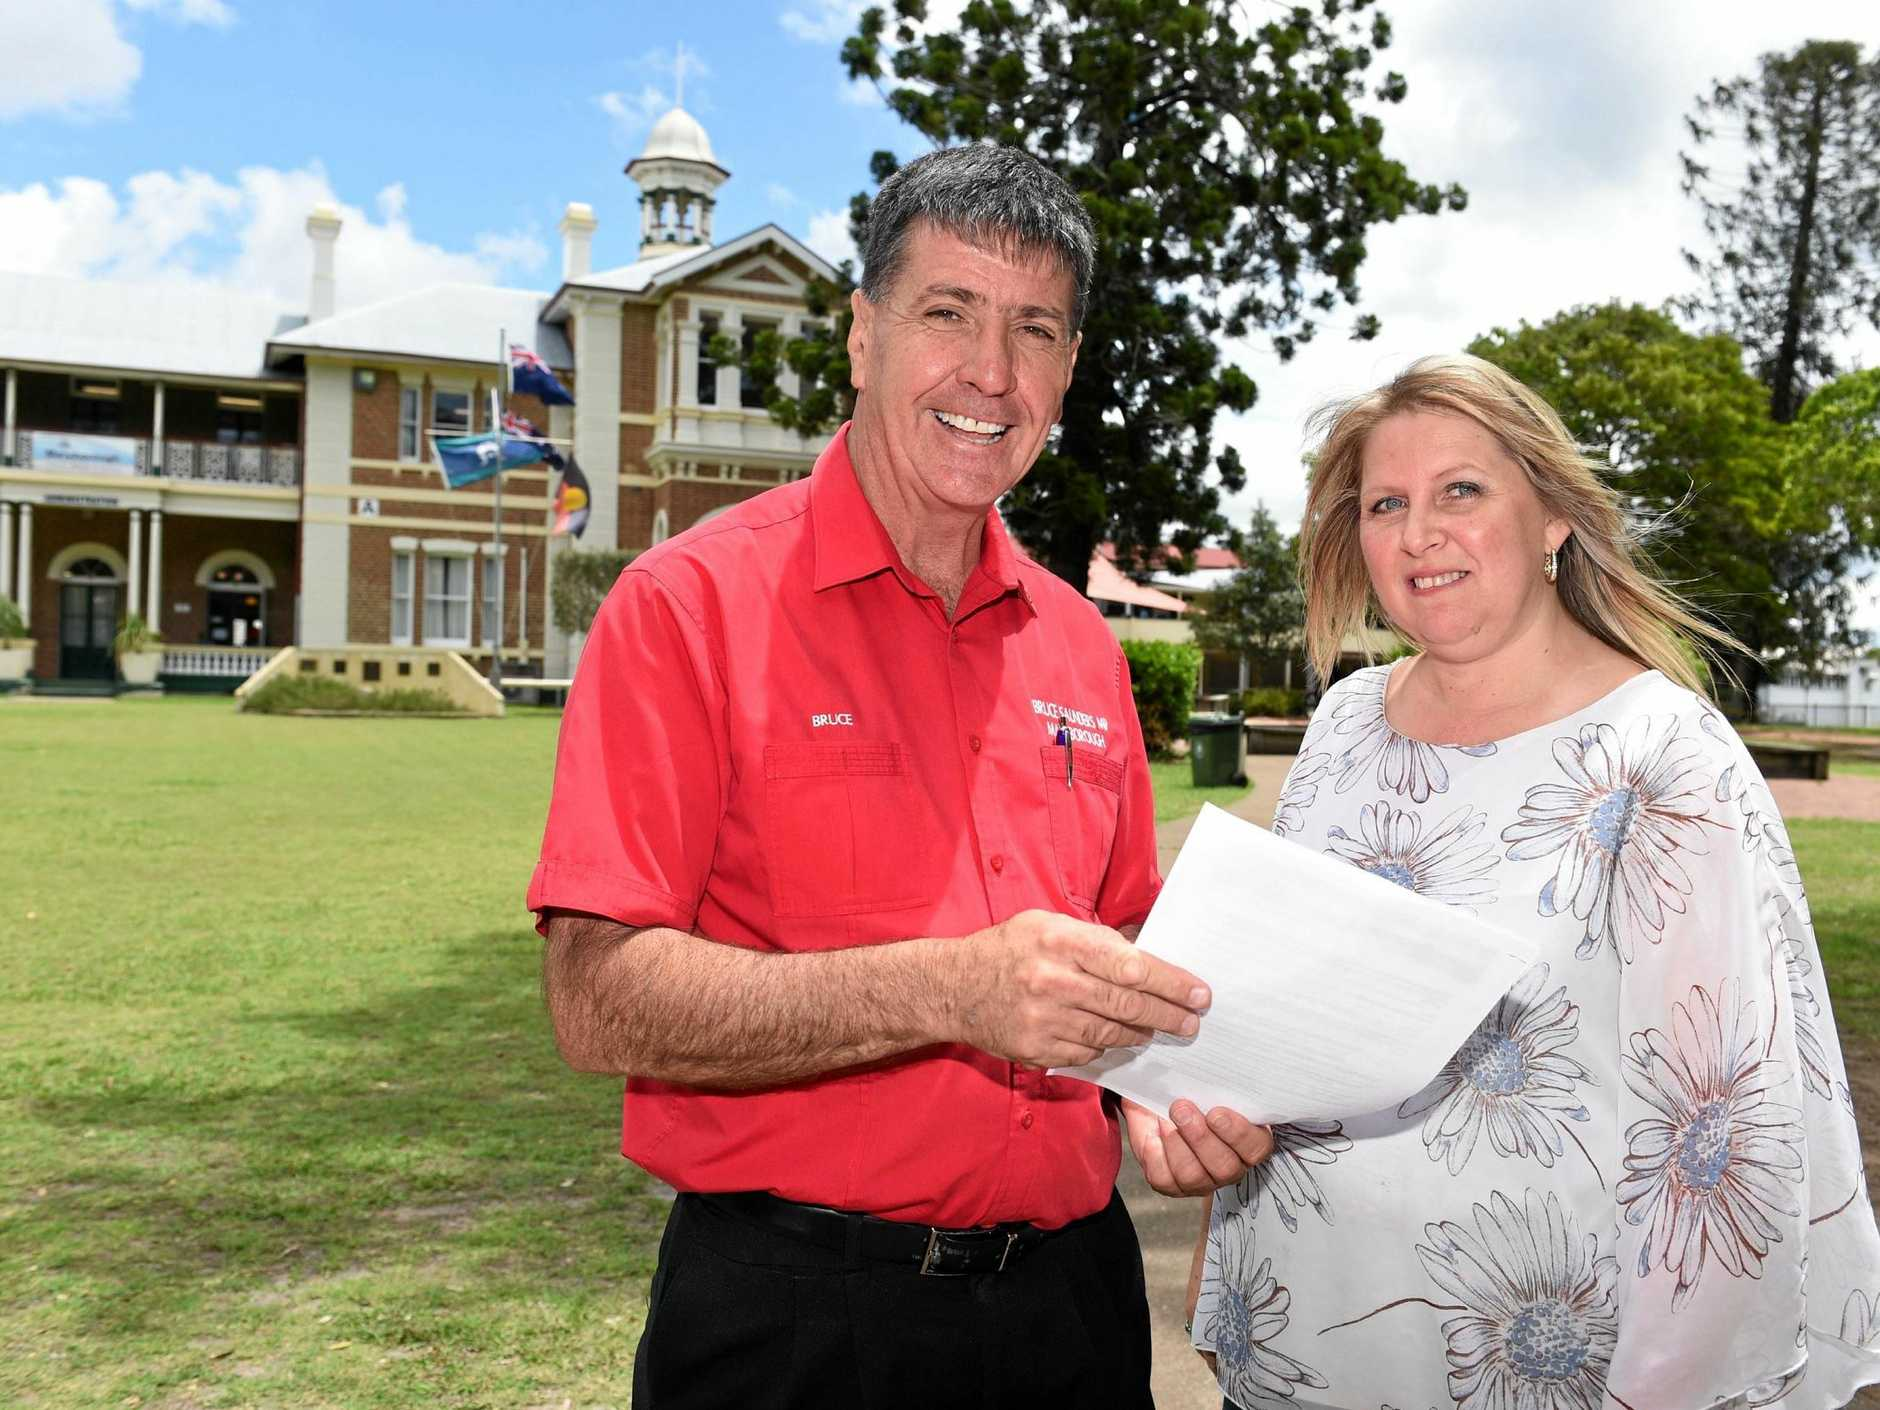 CHEQUE THIS: Labor Member for Maryborough Bruce Saunders makes a $10 million election pledge for Maryborough High School to Leeanne McIndoe, president of Maryborough High School P&C.